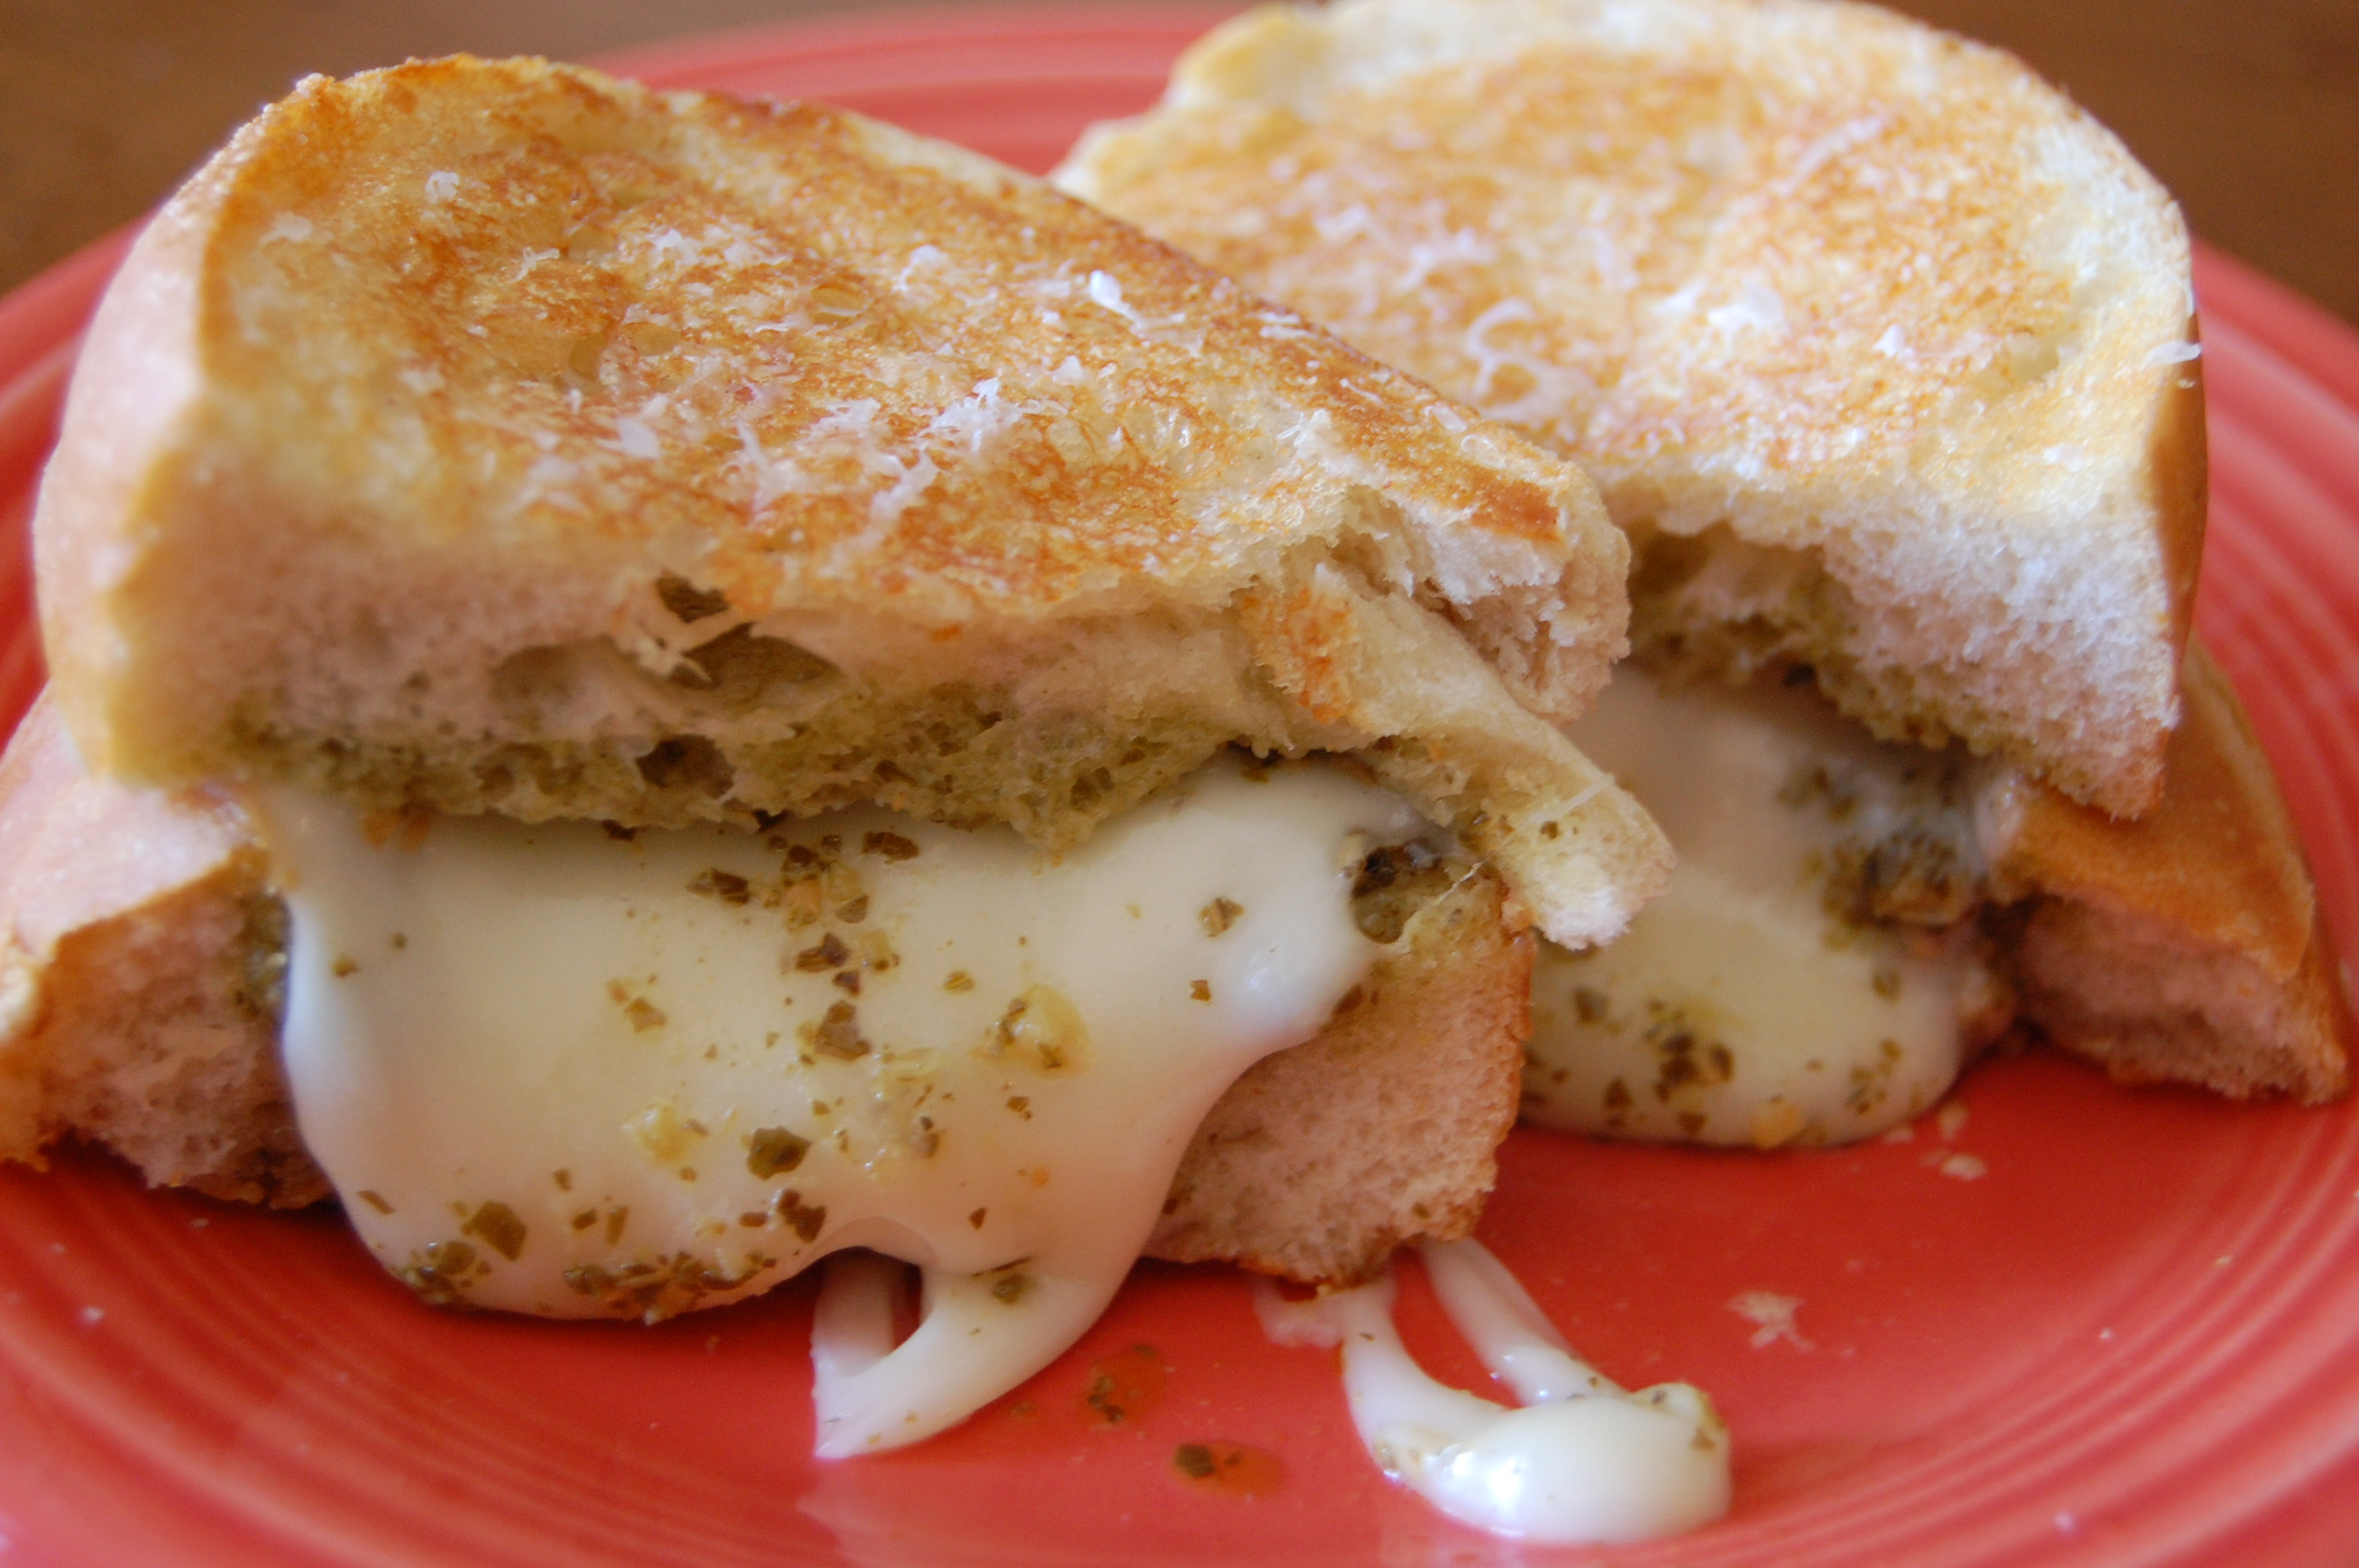 ... Grilled Cheese Month and today (ahhh) is National Grilled Cheese Day